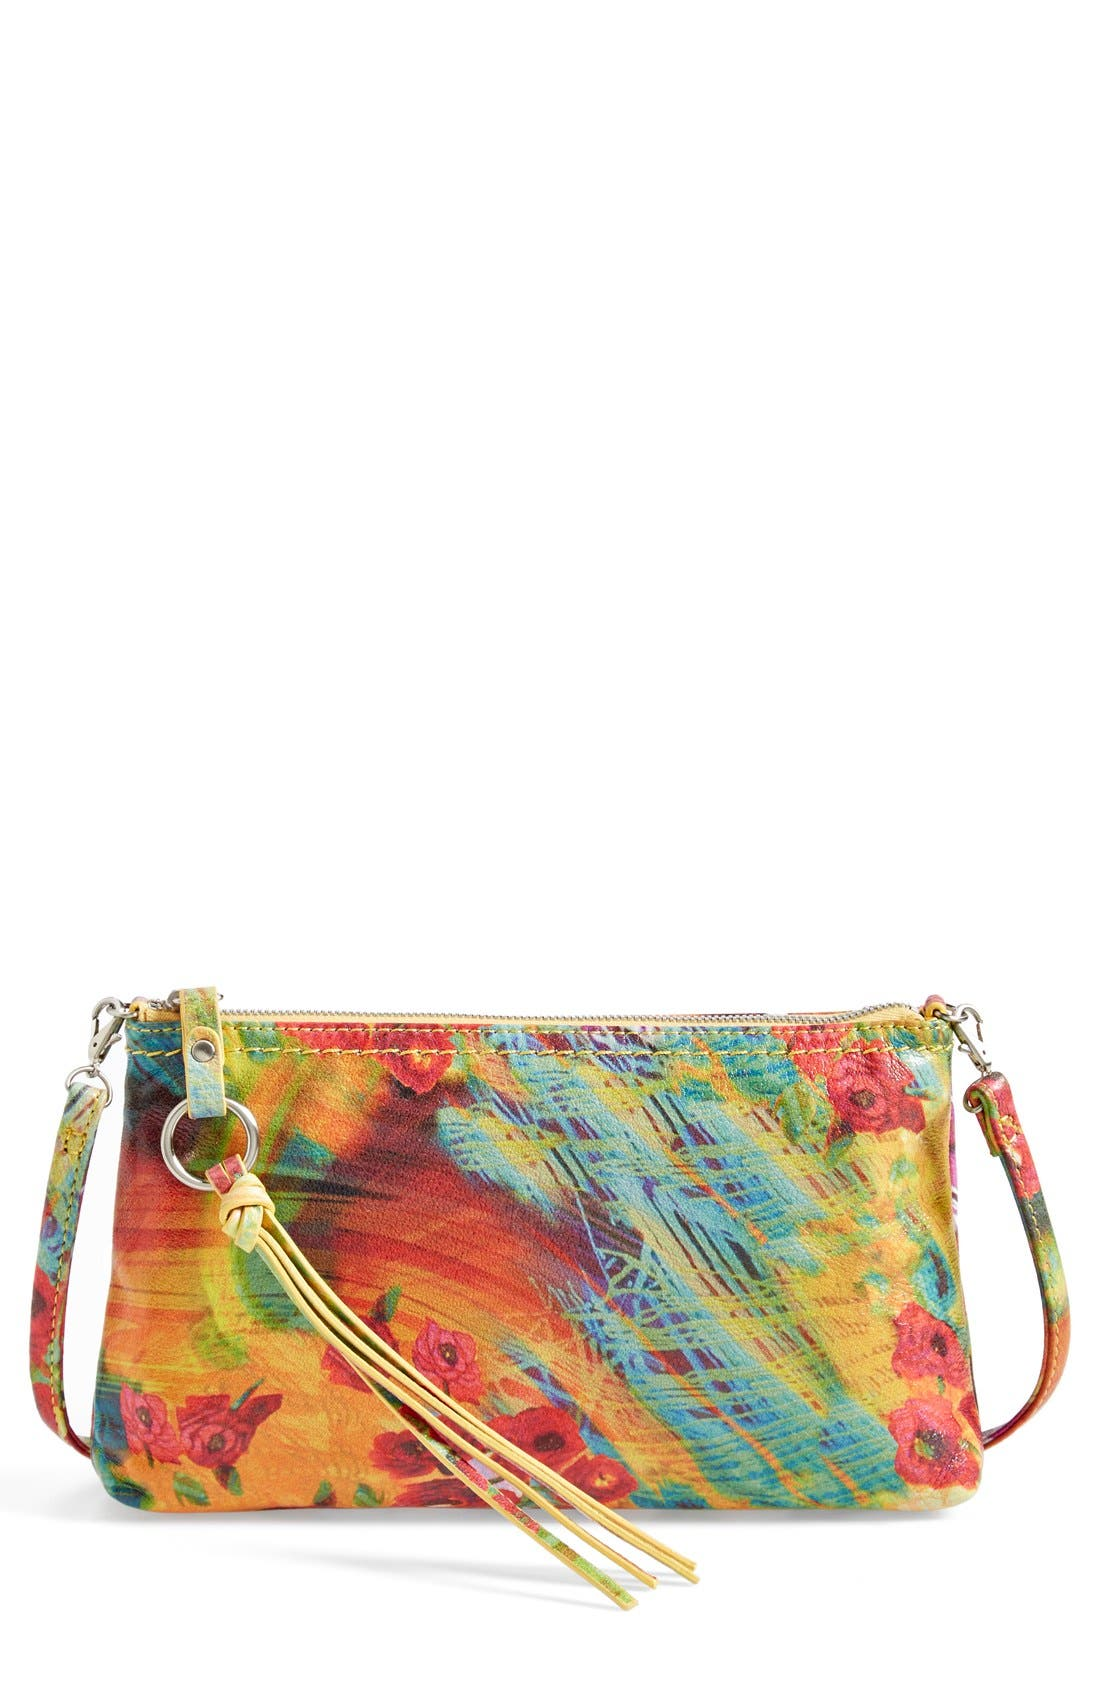 'Darcy' Leather Crossbody Bag,                             Main thumbnail 27, color,